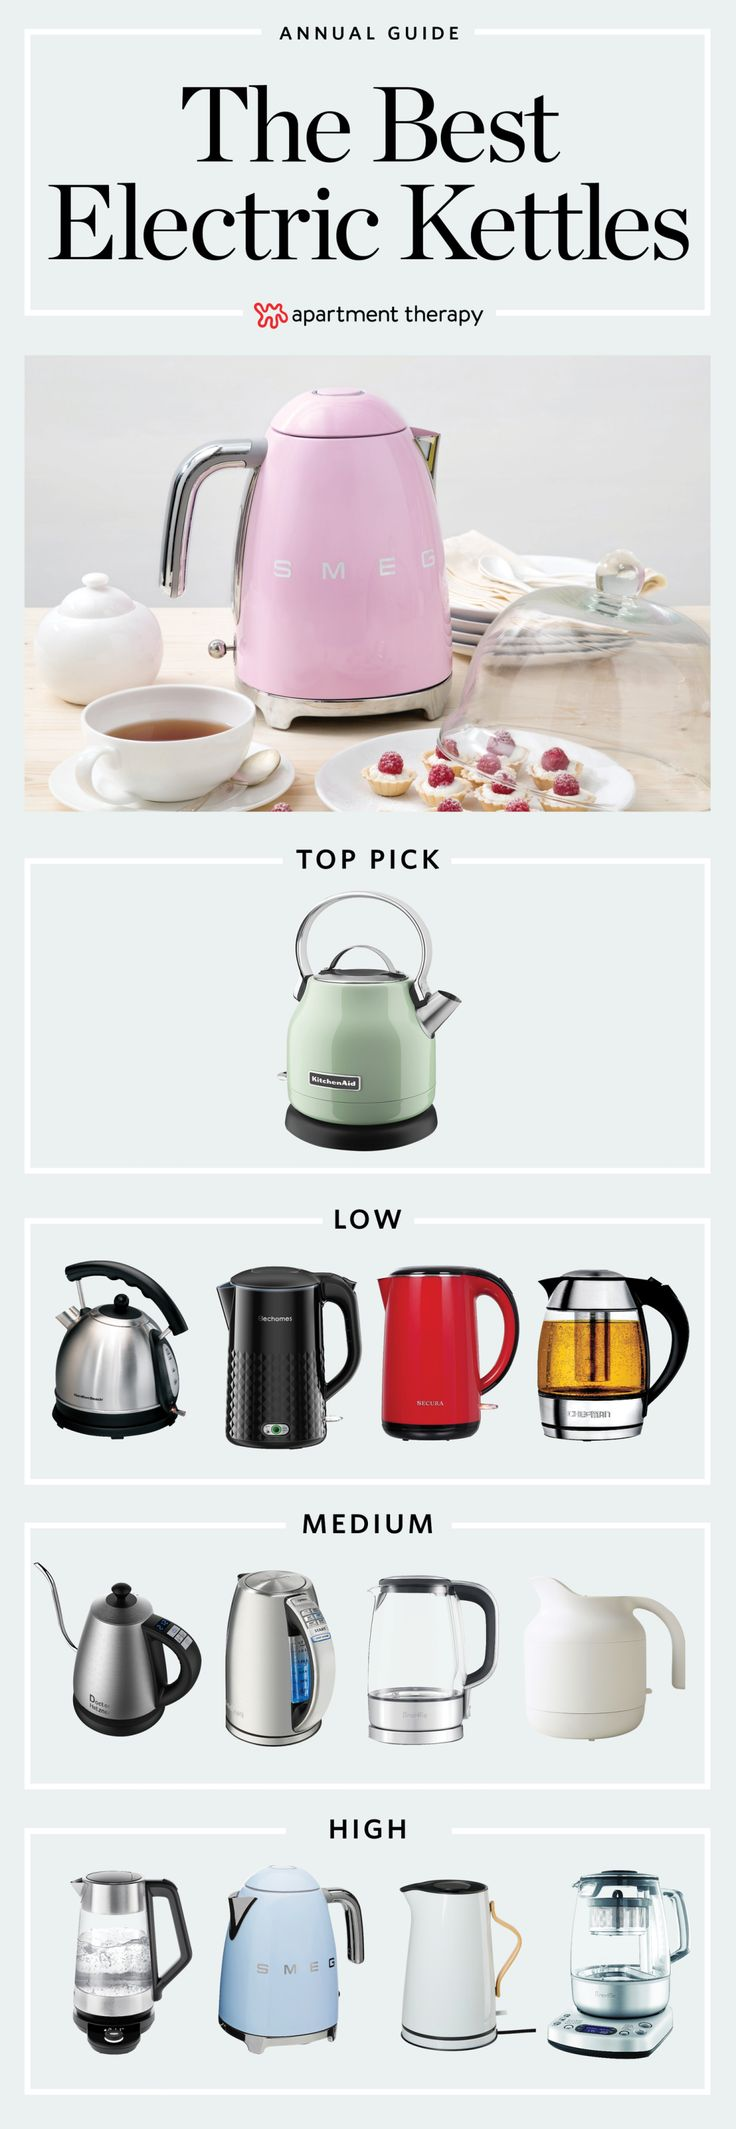 The Best Electric Kettles | Both speedier and safer than heating water in the microwave or on the stovetop, an electric kettle that's attractive enough to leave out on the counter may just become your most reached-for kitchen appliance. Our top pick this year was the KitchenAid Electric Kettle.